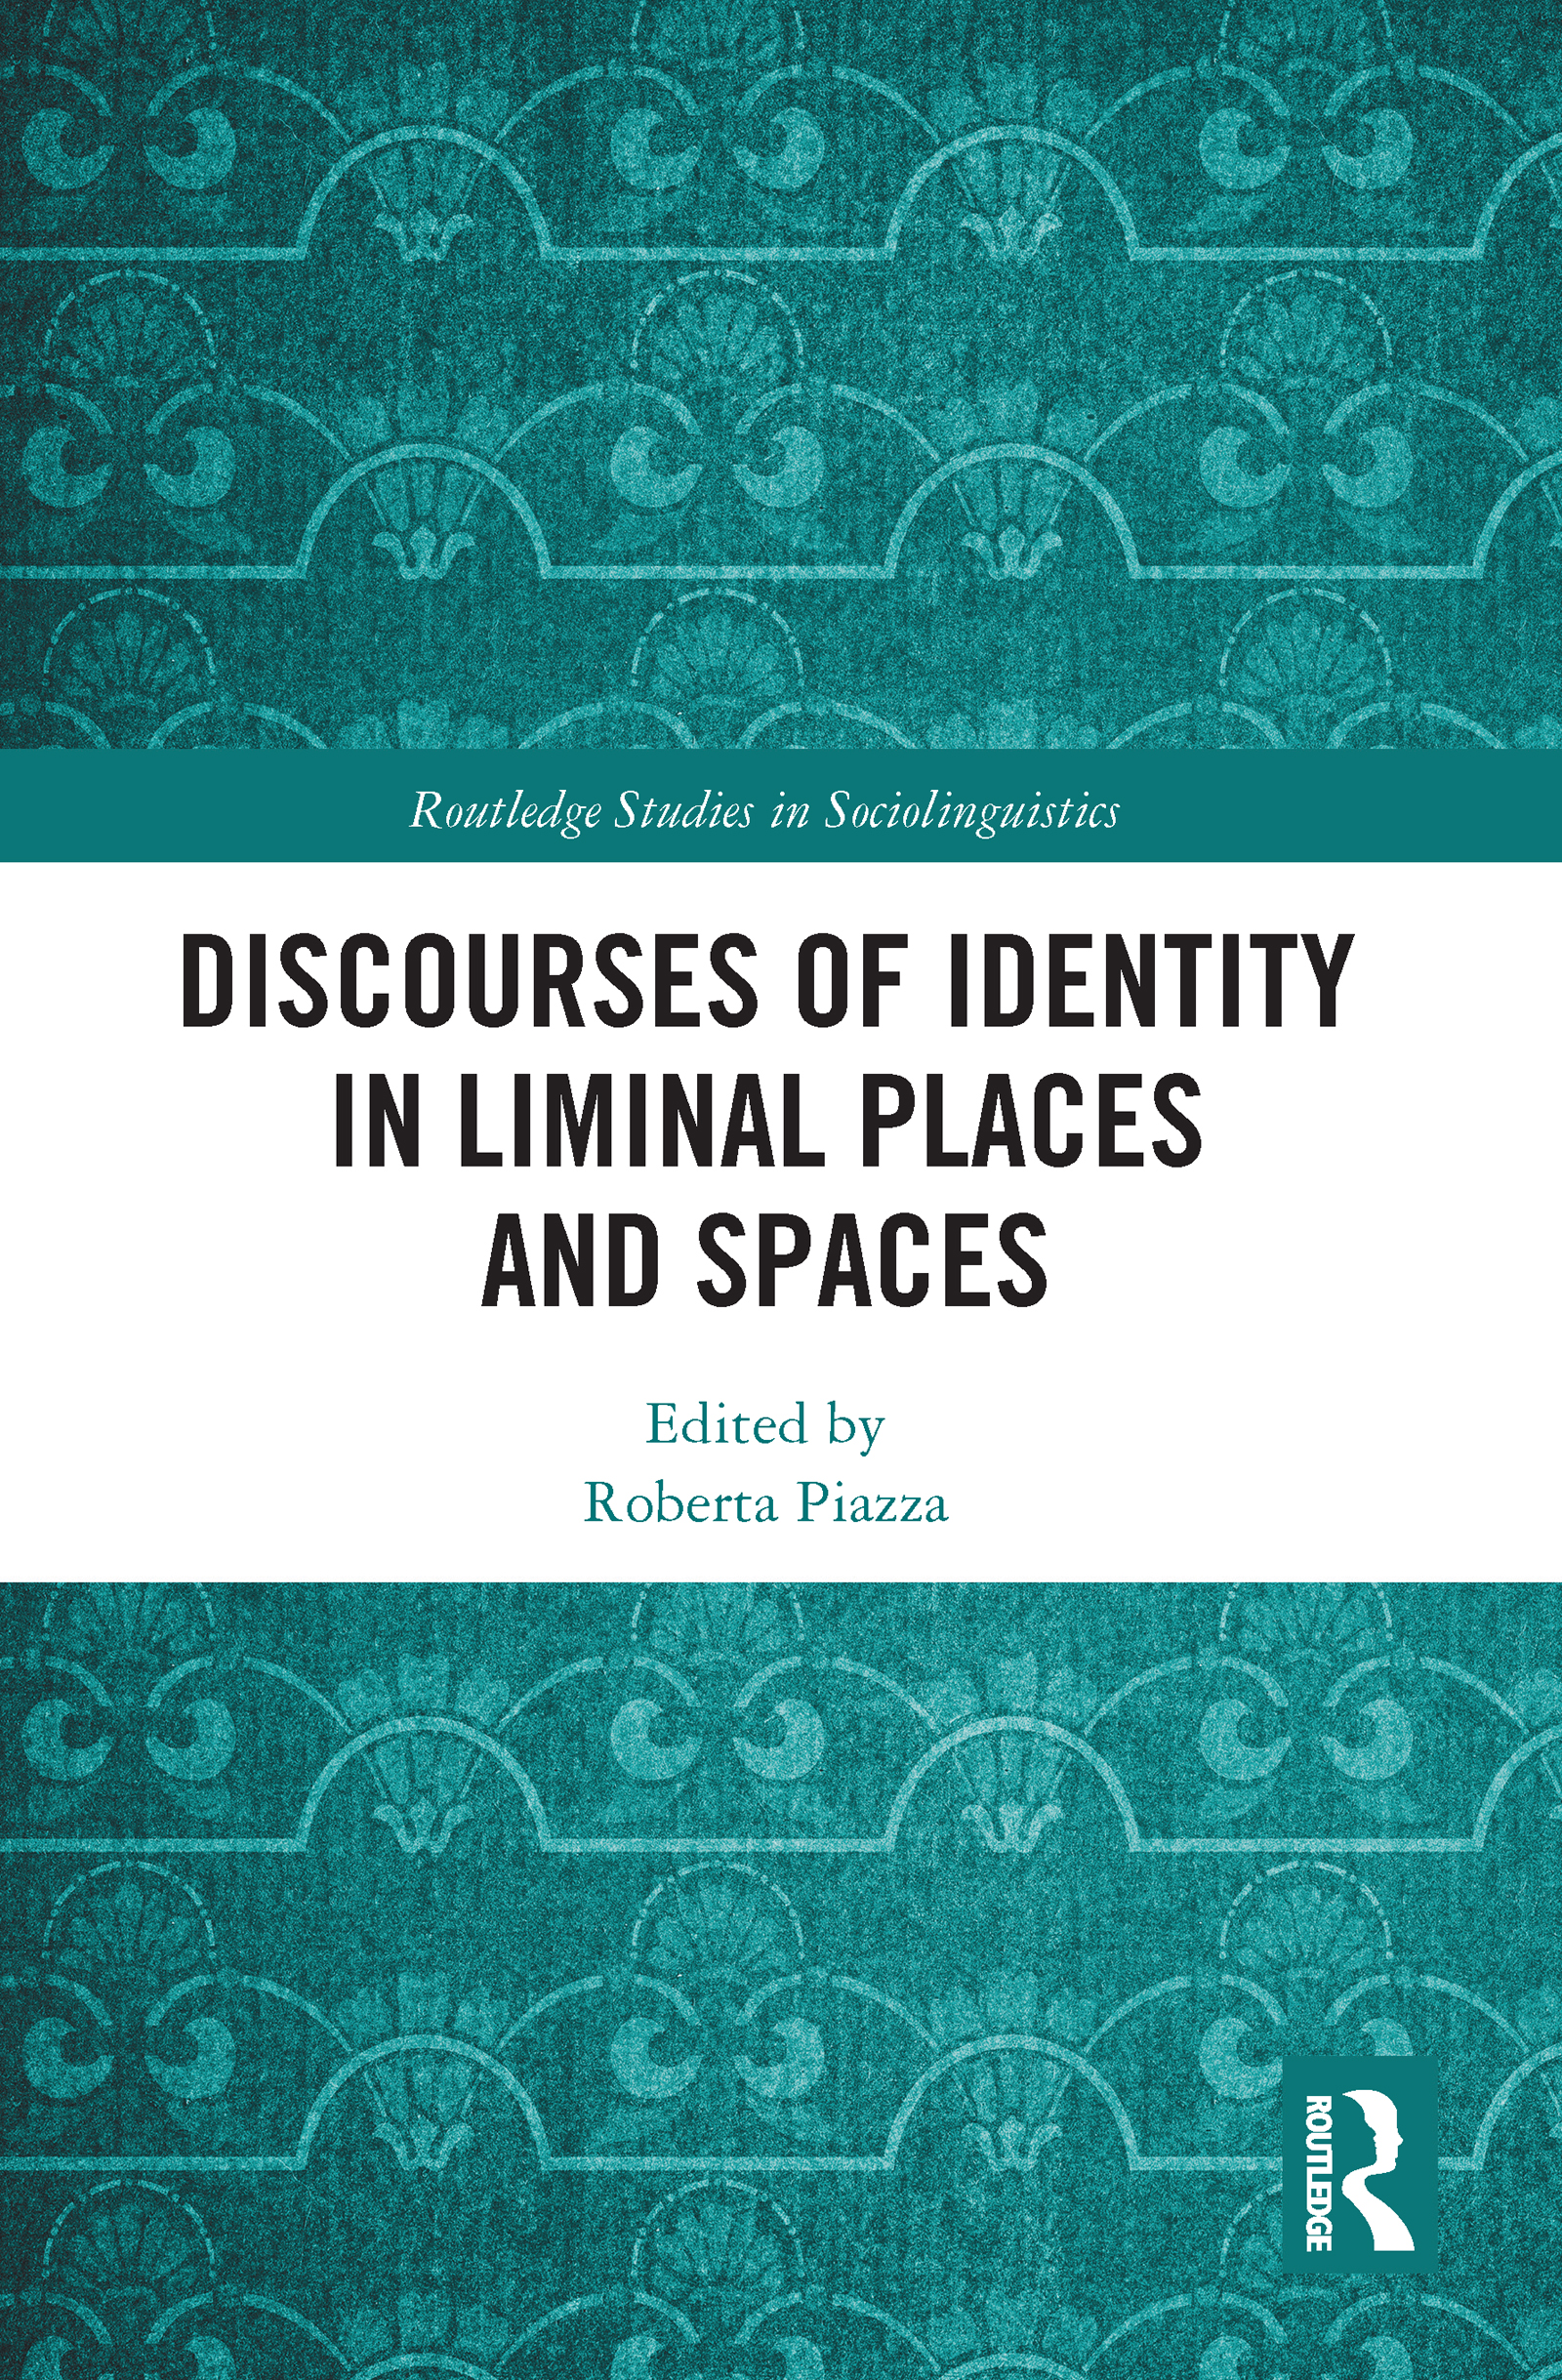 Discourses of Identity in Liminal Places and Spaces